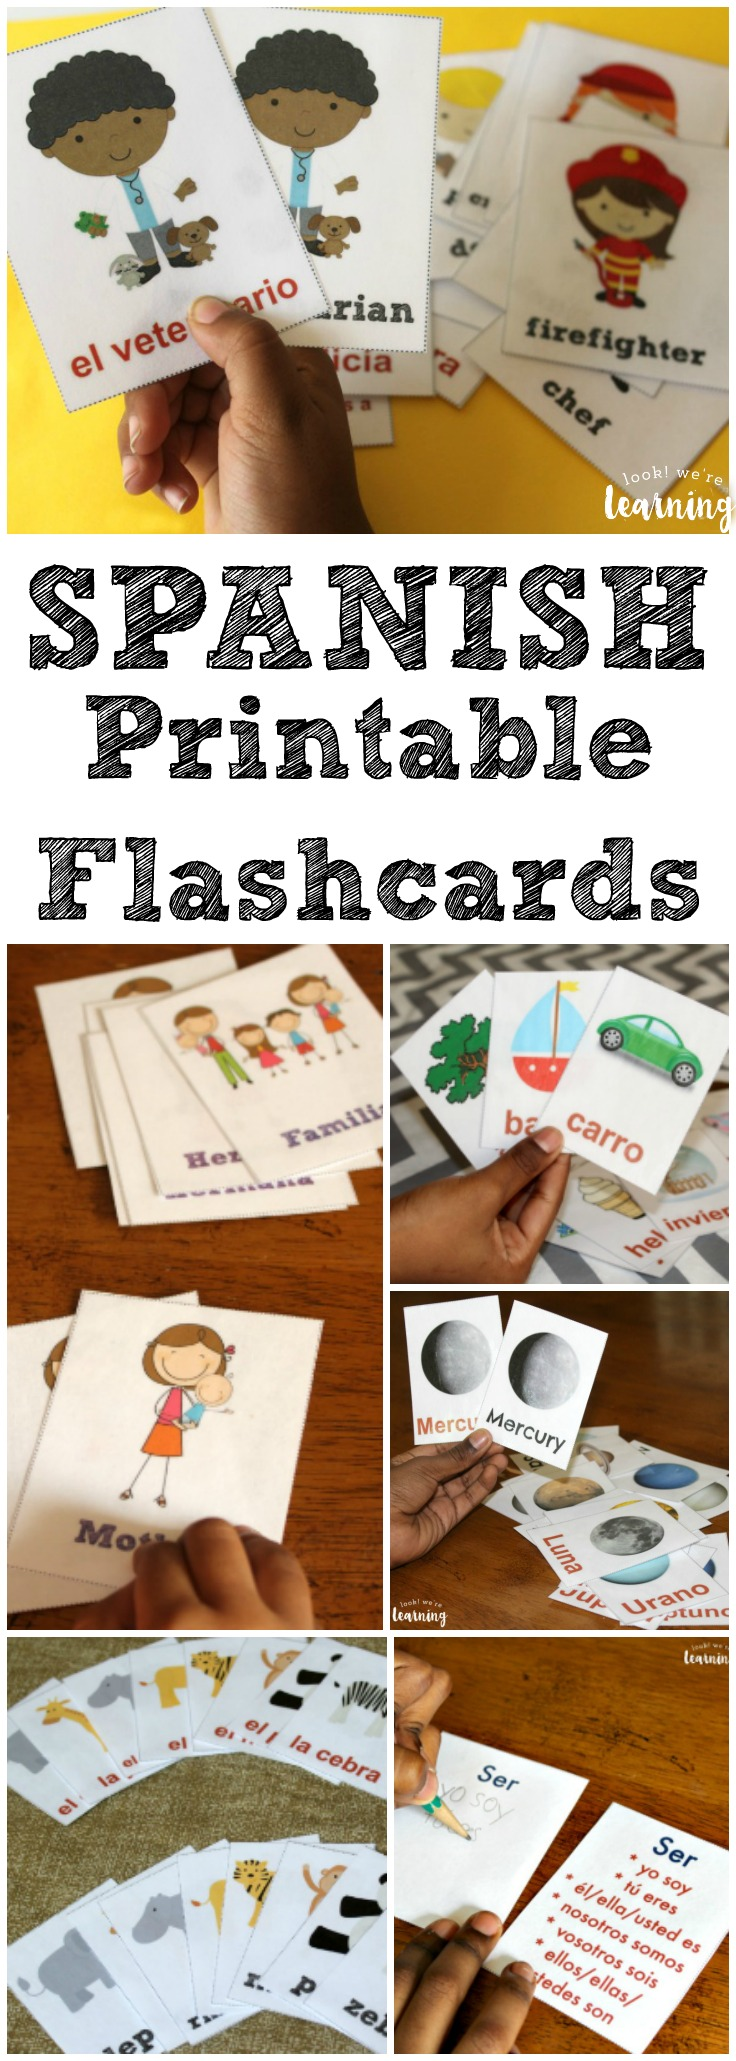 Use these printable Spanish flashcards to help kids learn basic Spanish vocabulary!